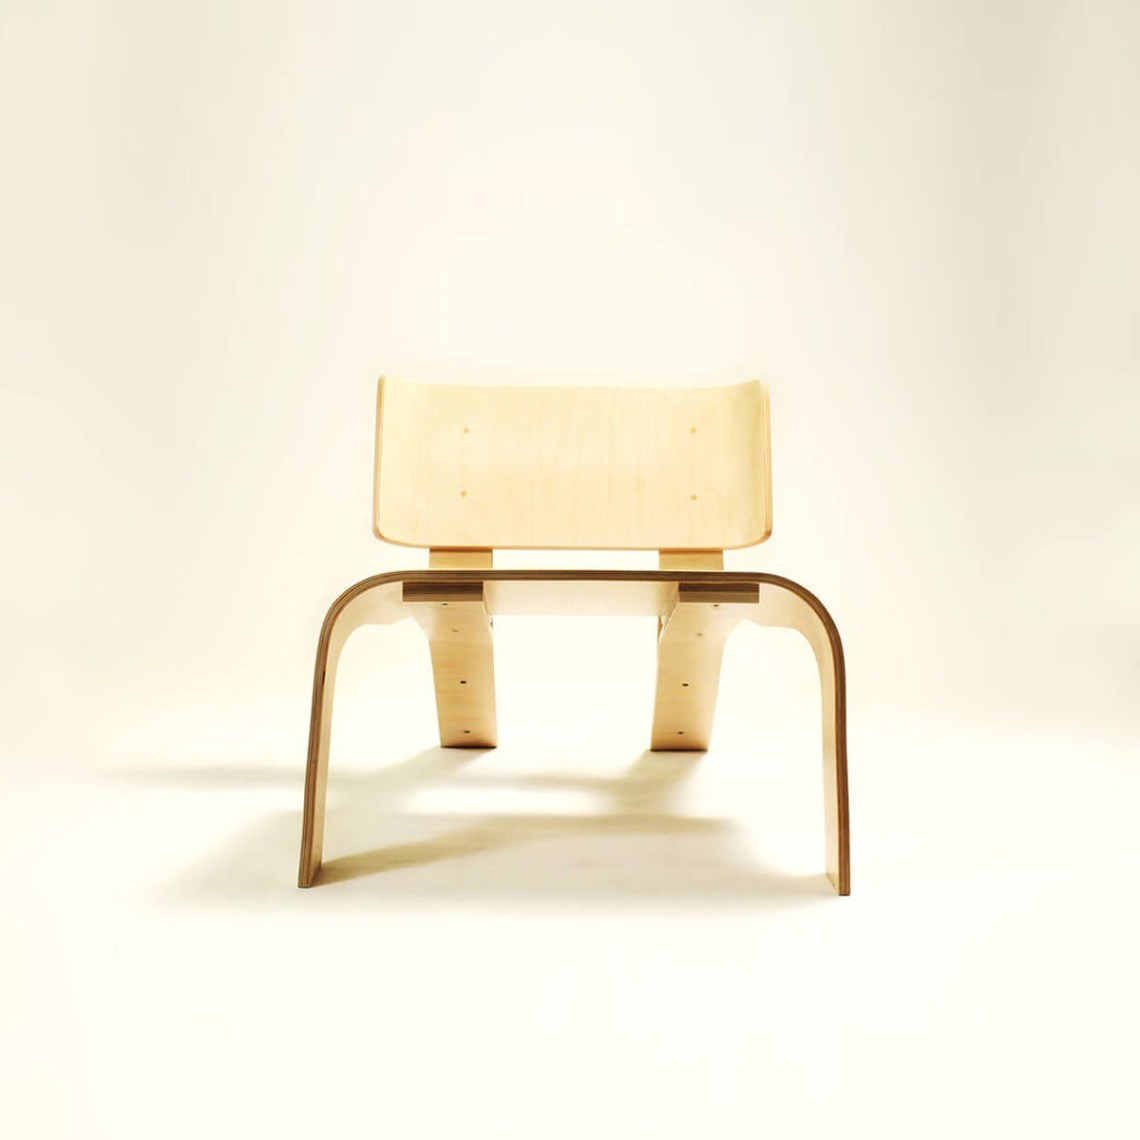 An interesting a bent plywood furniture chair you can make yourself